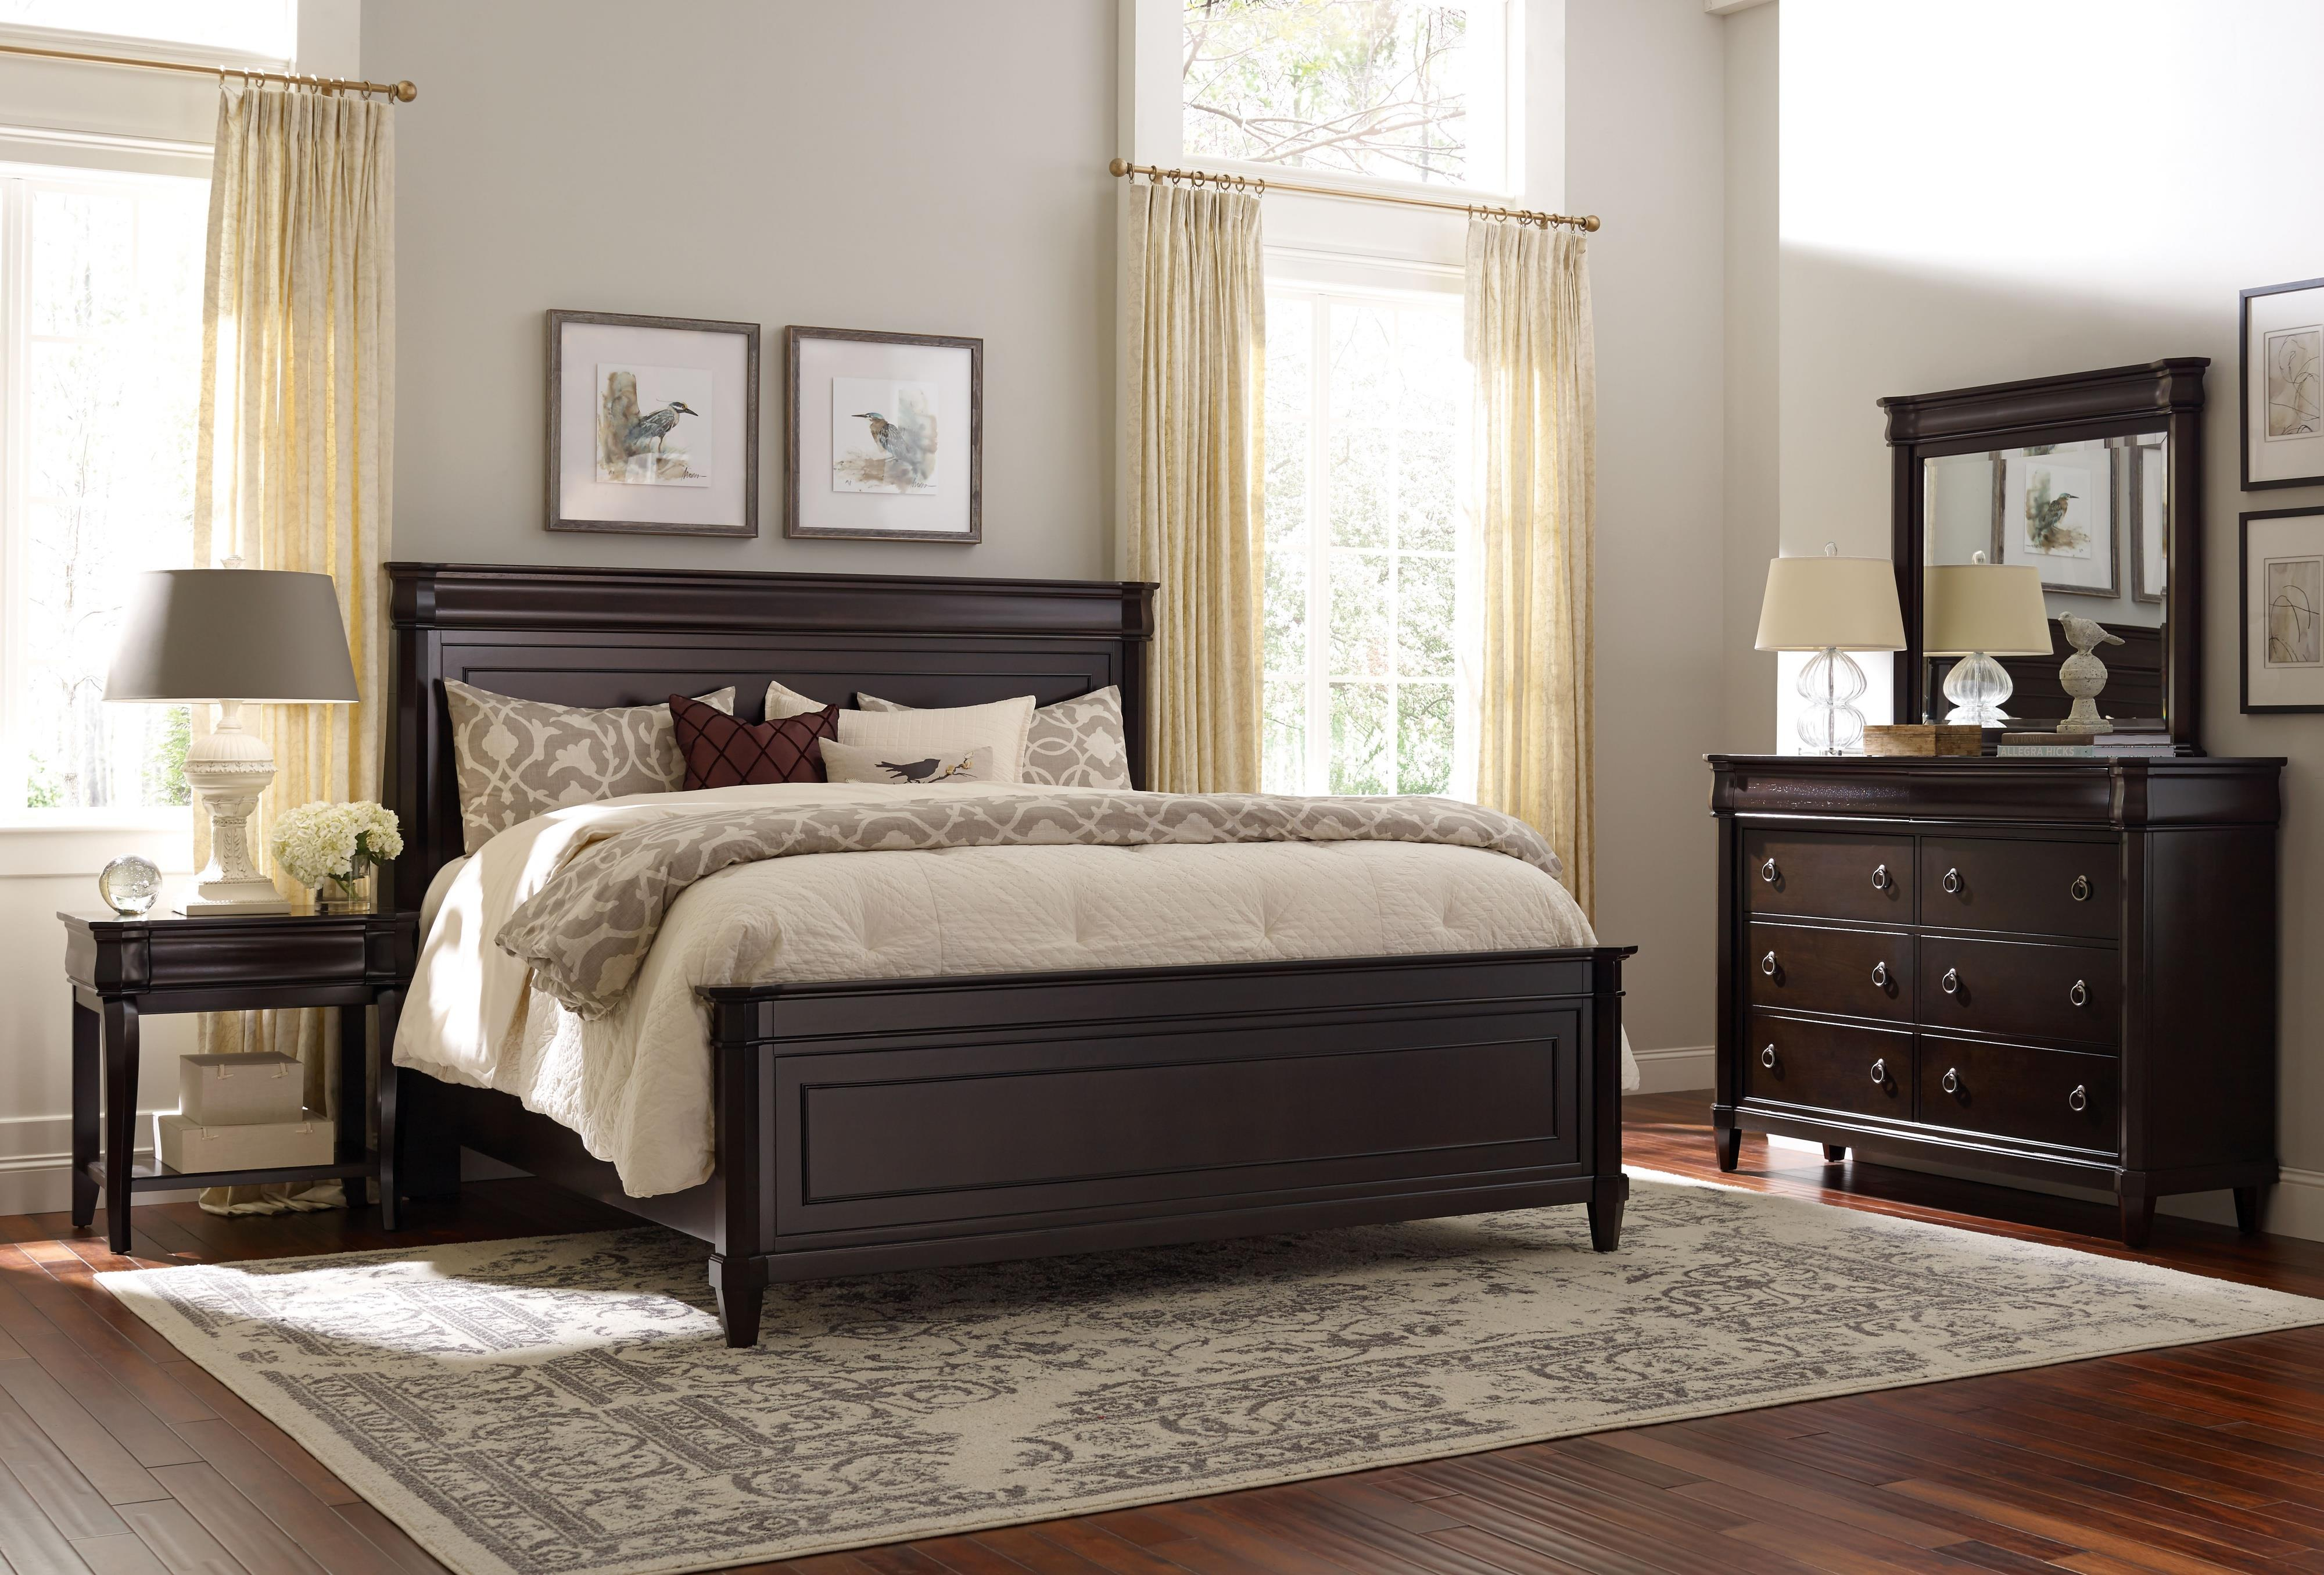 Broyhill Furniture Aryell Queen Bedroom Group - Item Number: 4907 Q Bedroom Group 1